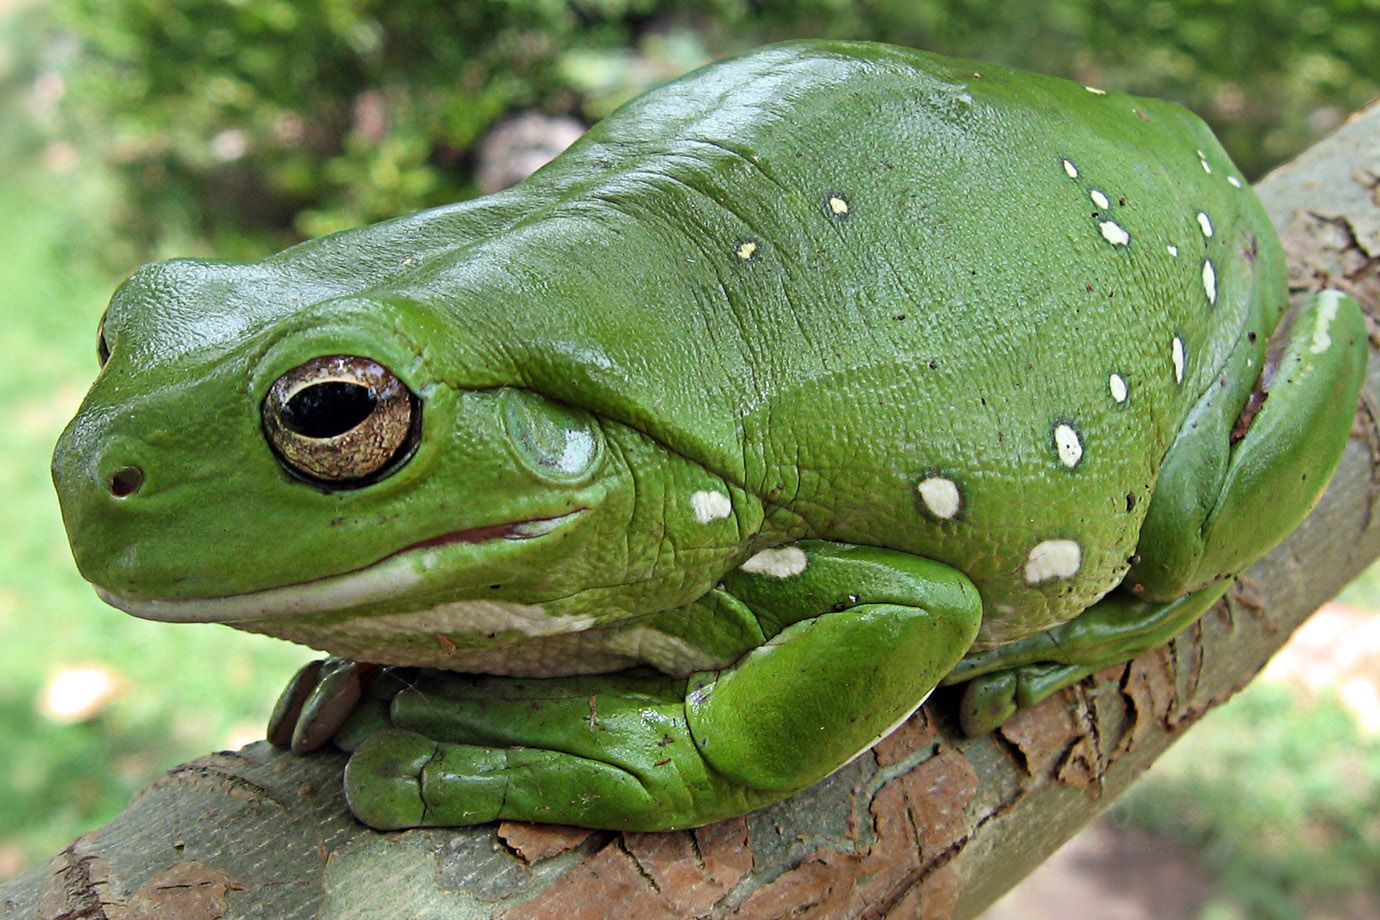 Australian Green Tree Frog at rest